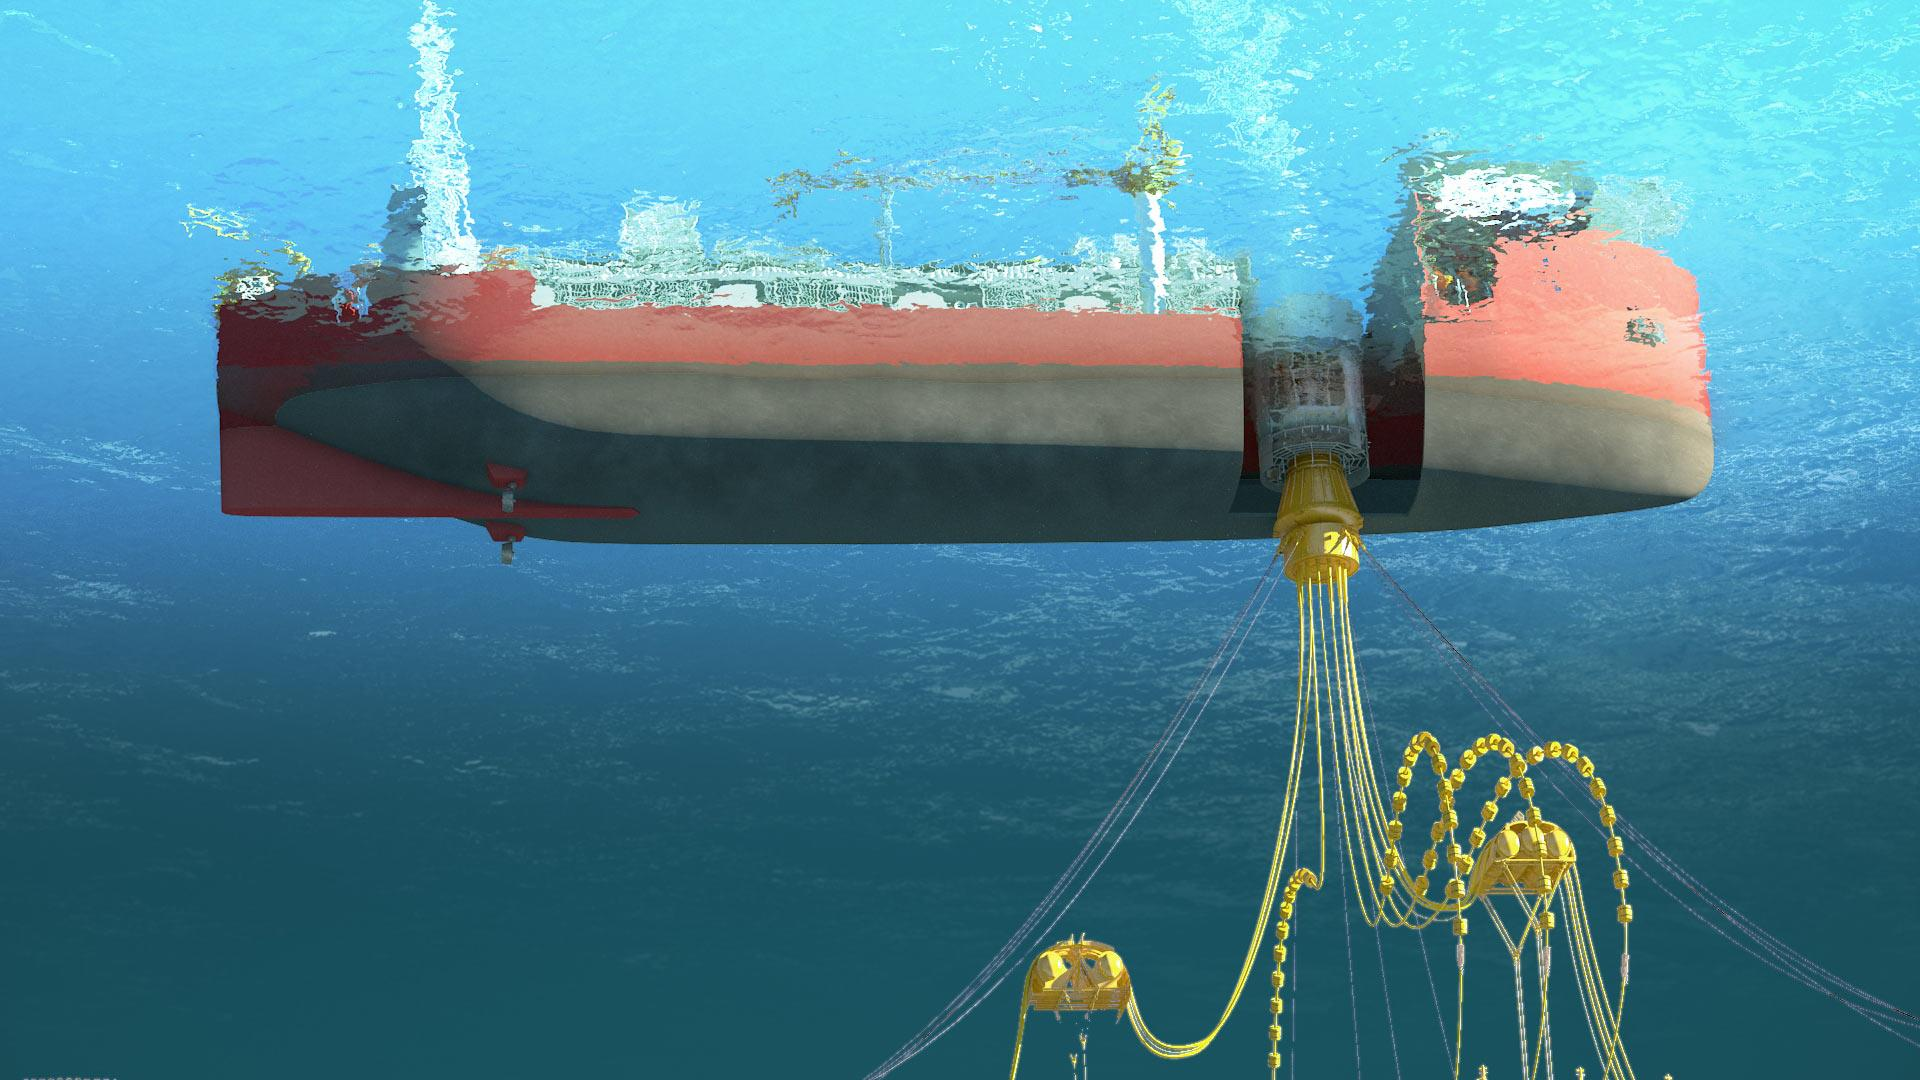 Render of an APL Submerged Turret Production operating under water